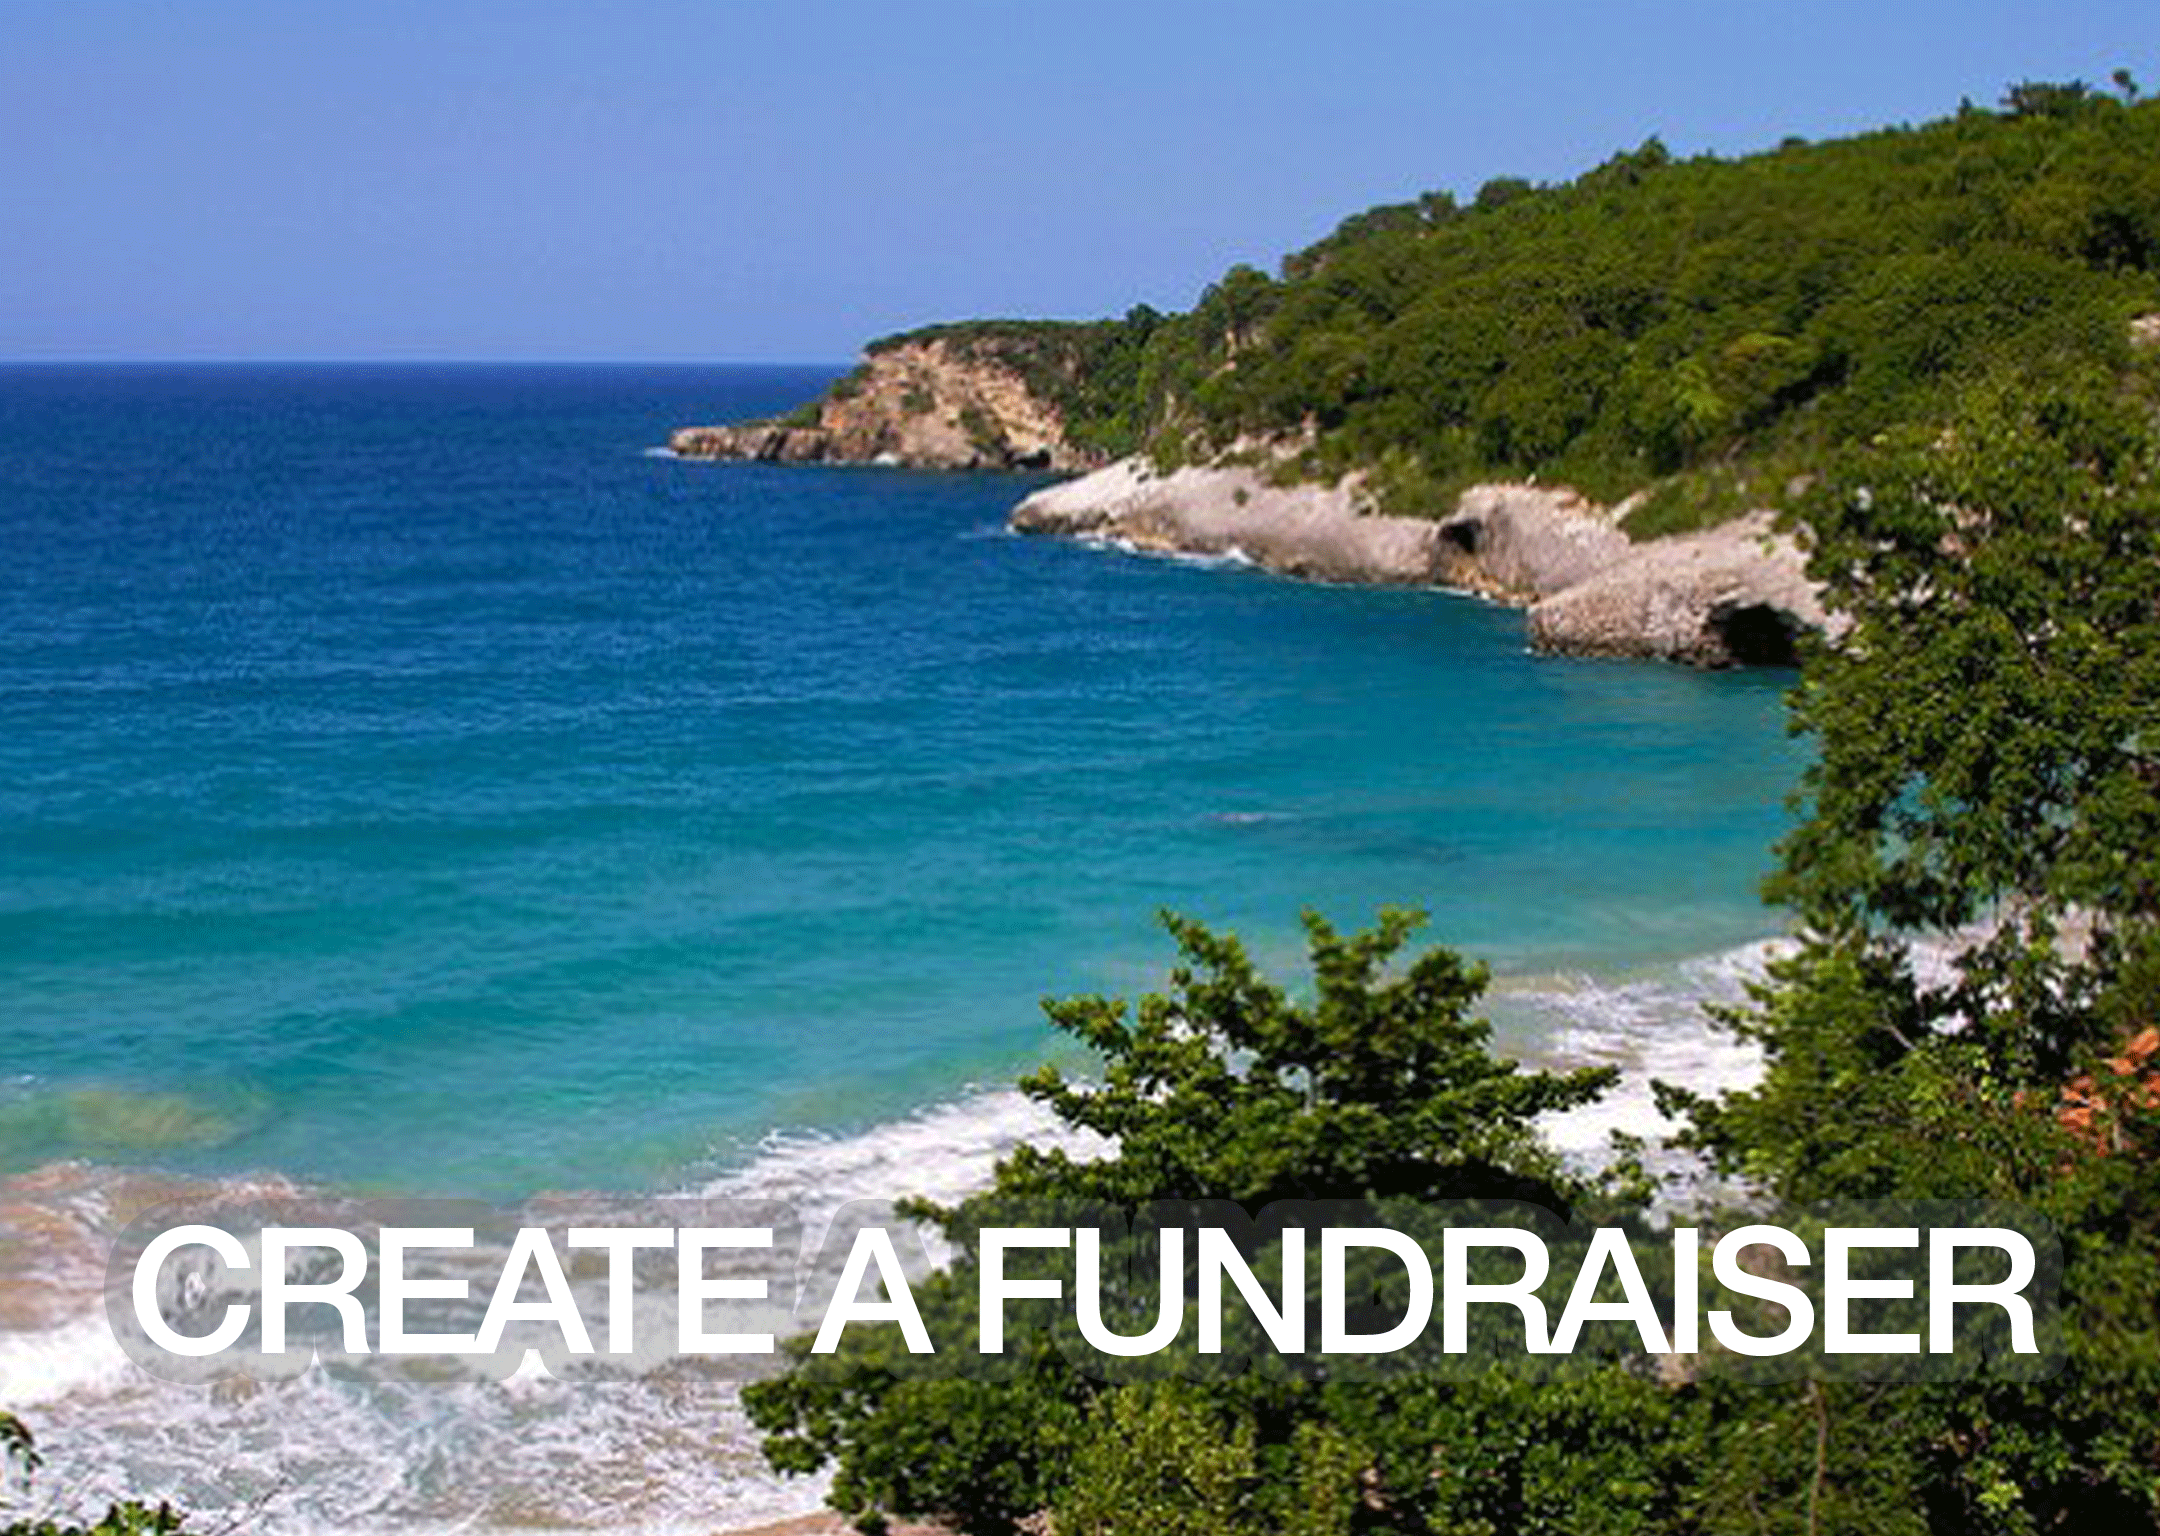 CREATE A FUNDRAISER.png